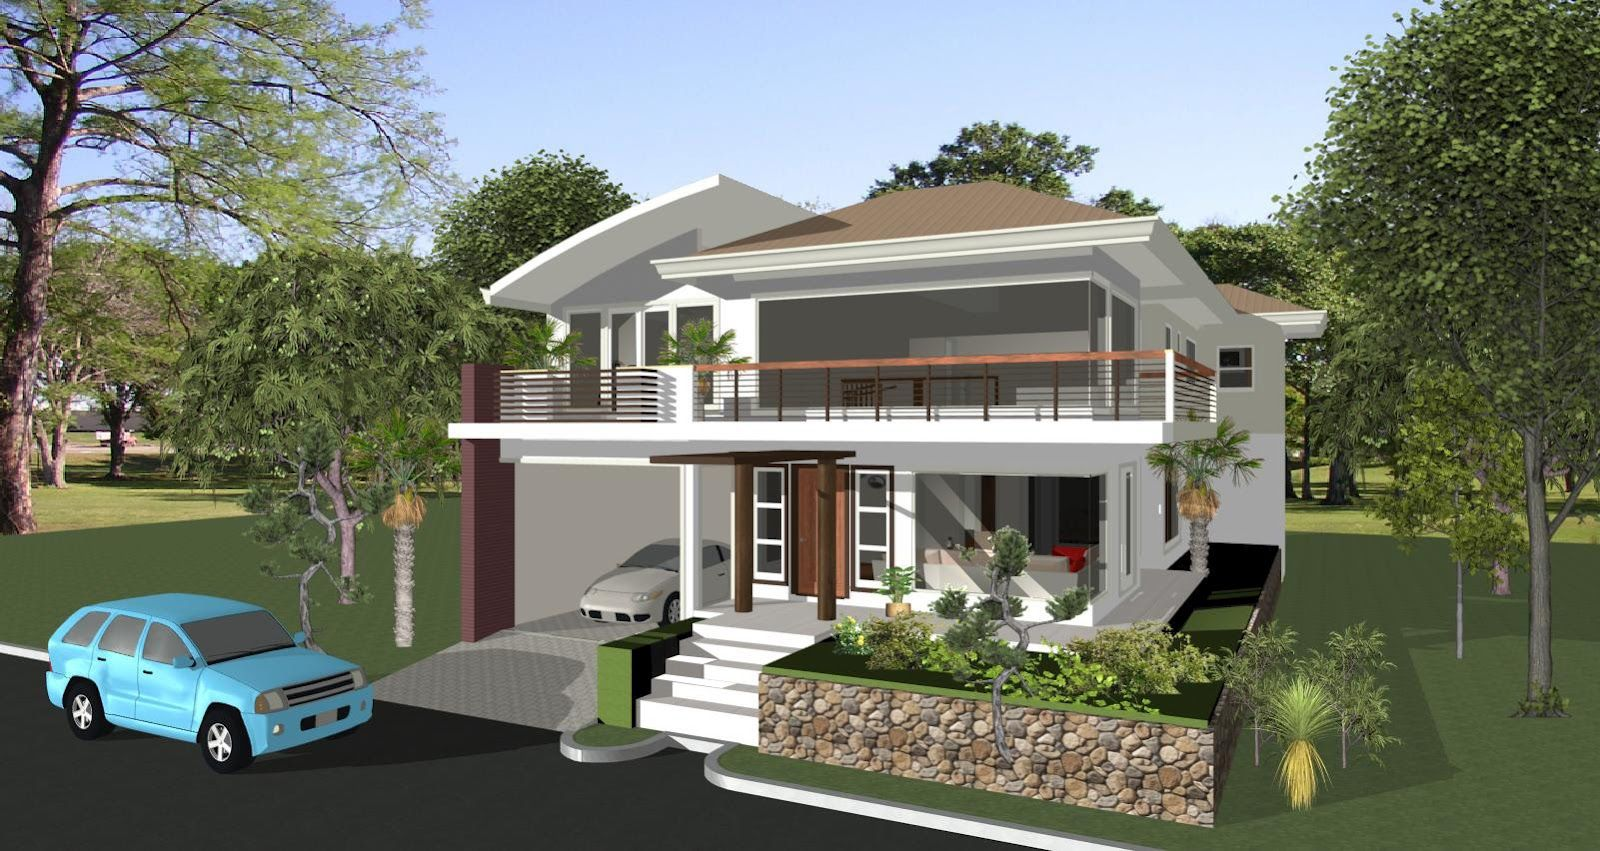 Dream Home Design Of Dream Home Designs Erecre Group Realty Design And